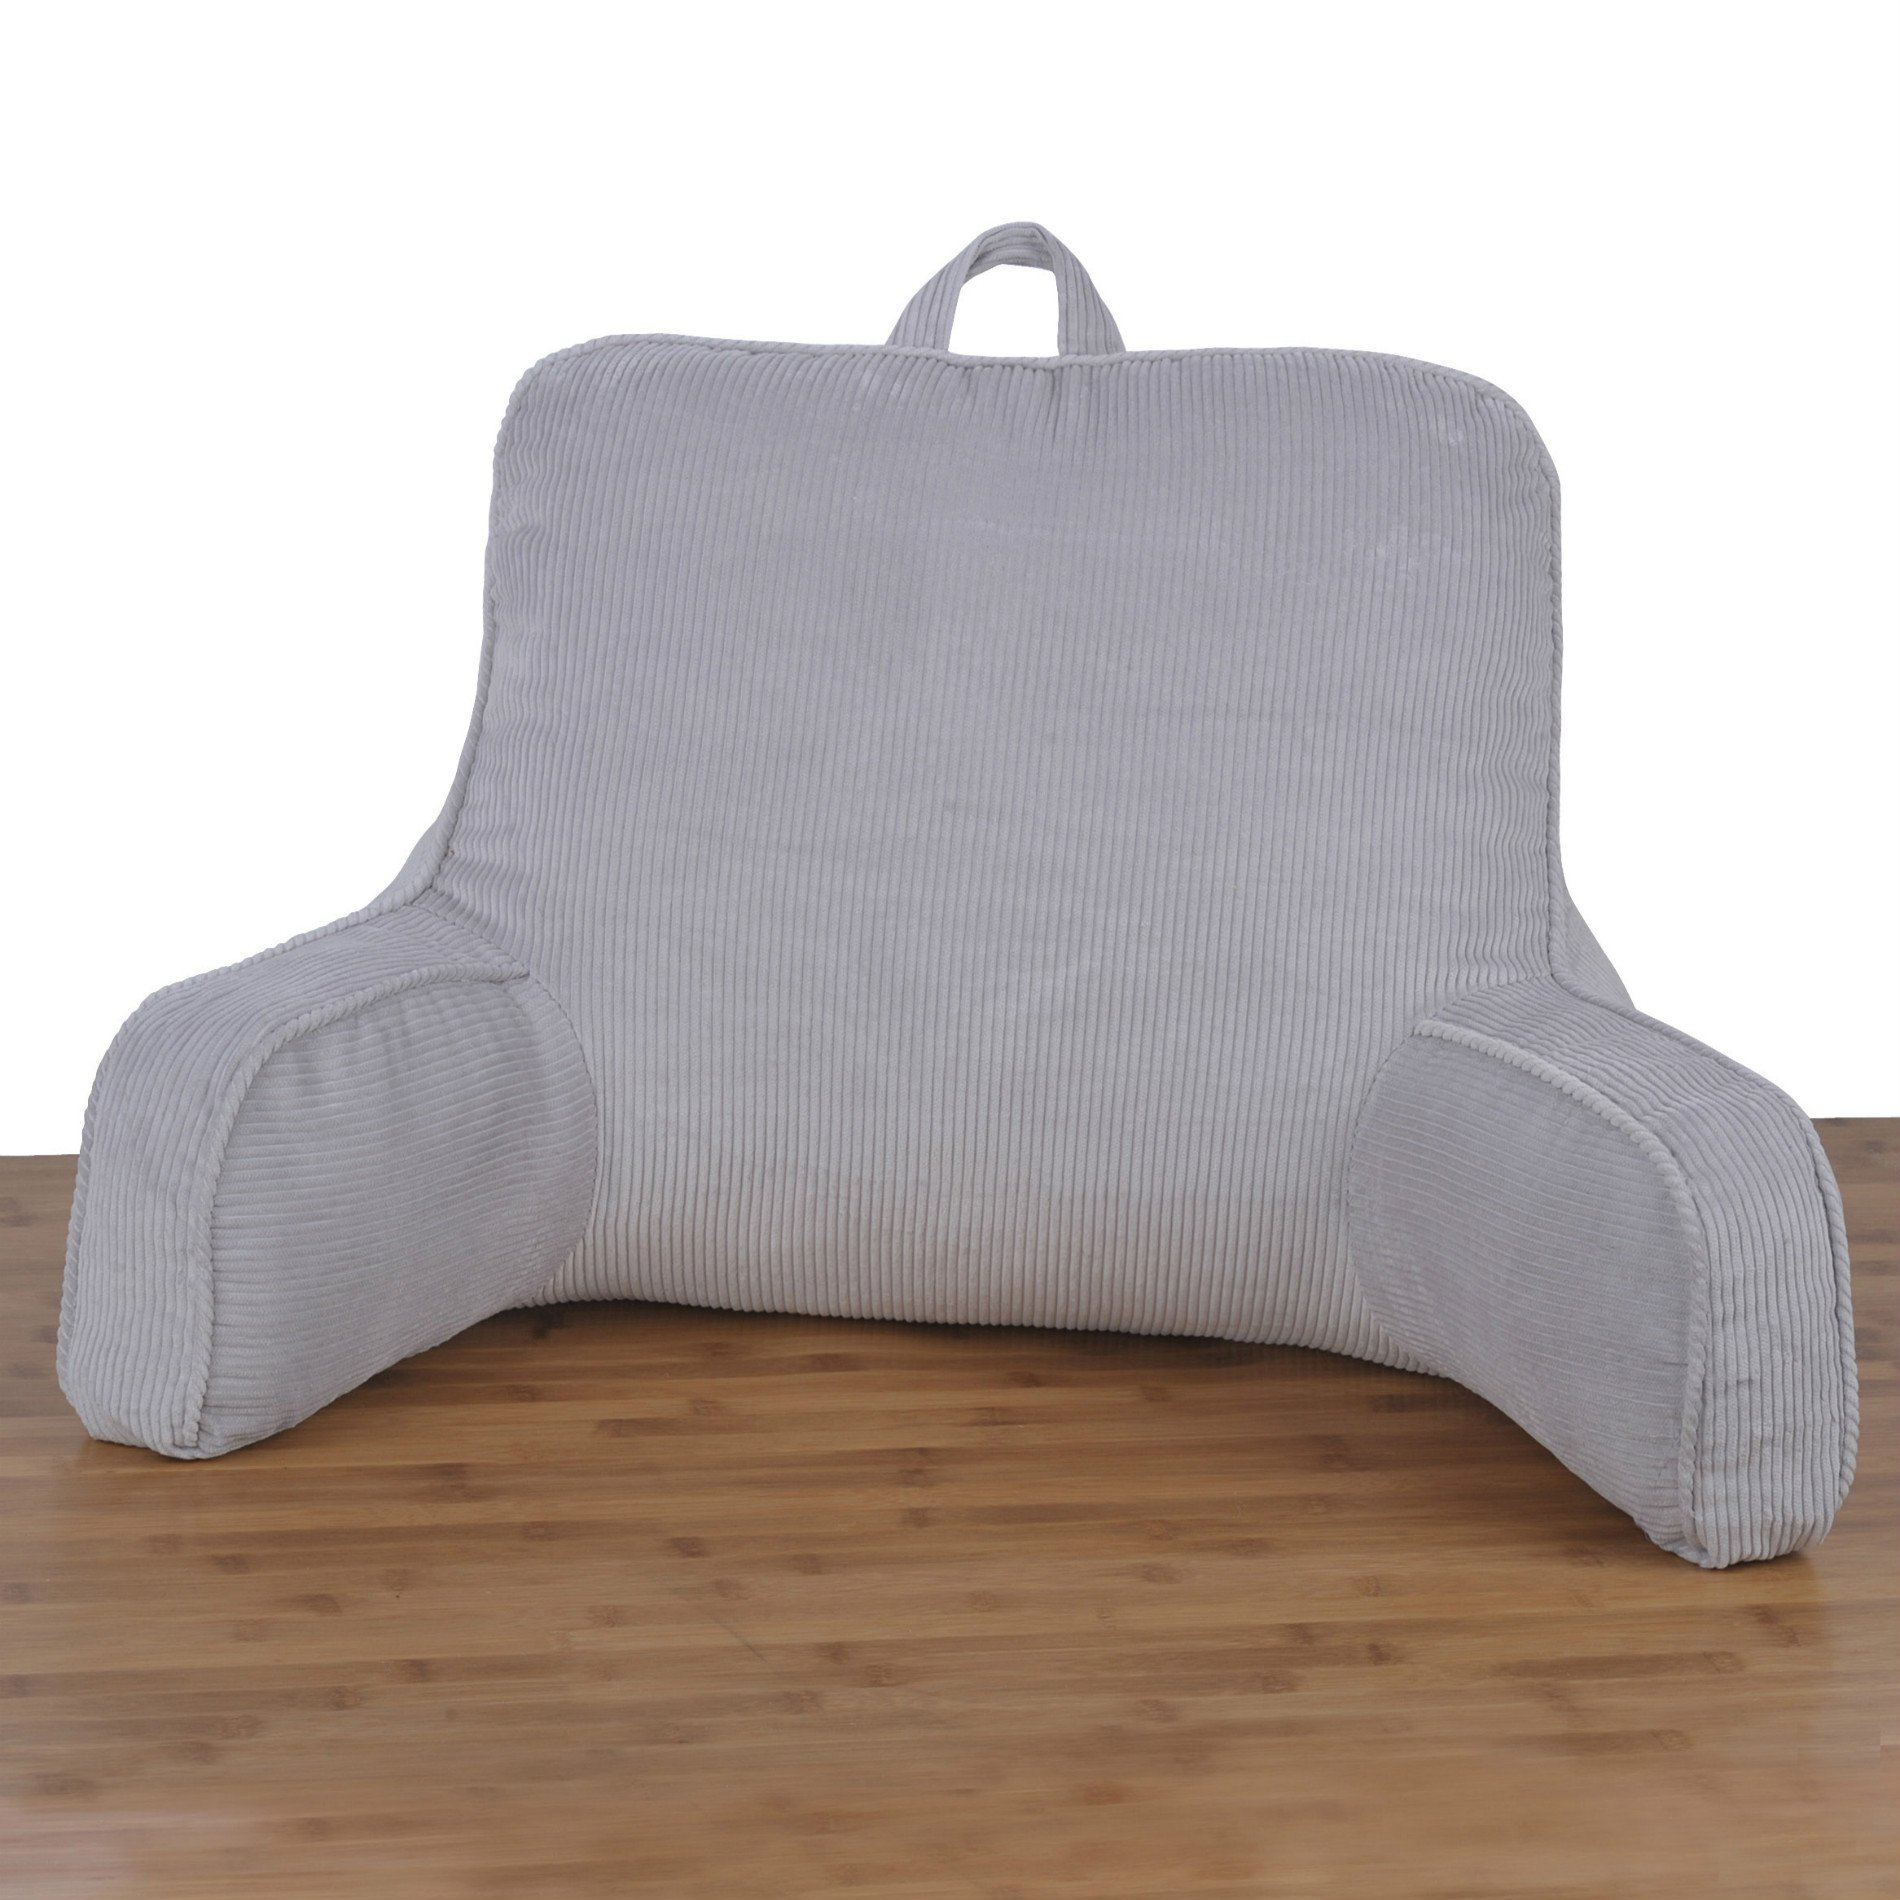 Home Soft Things Serenta Cotton Corduroy Bedrest Lounger Backrest with DIY Filling, Silver, 20'' x 18'' x 17'' by Home Soft Things